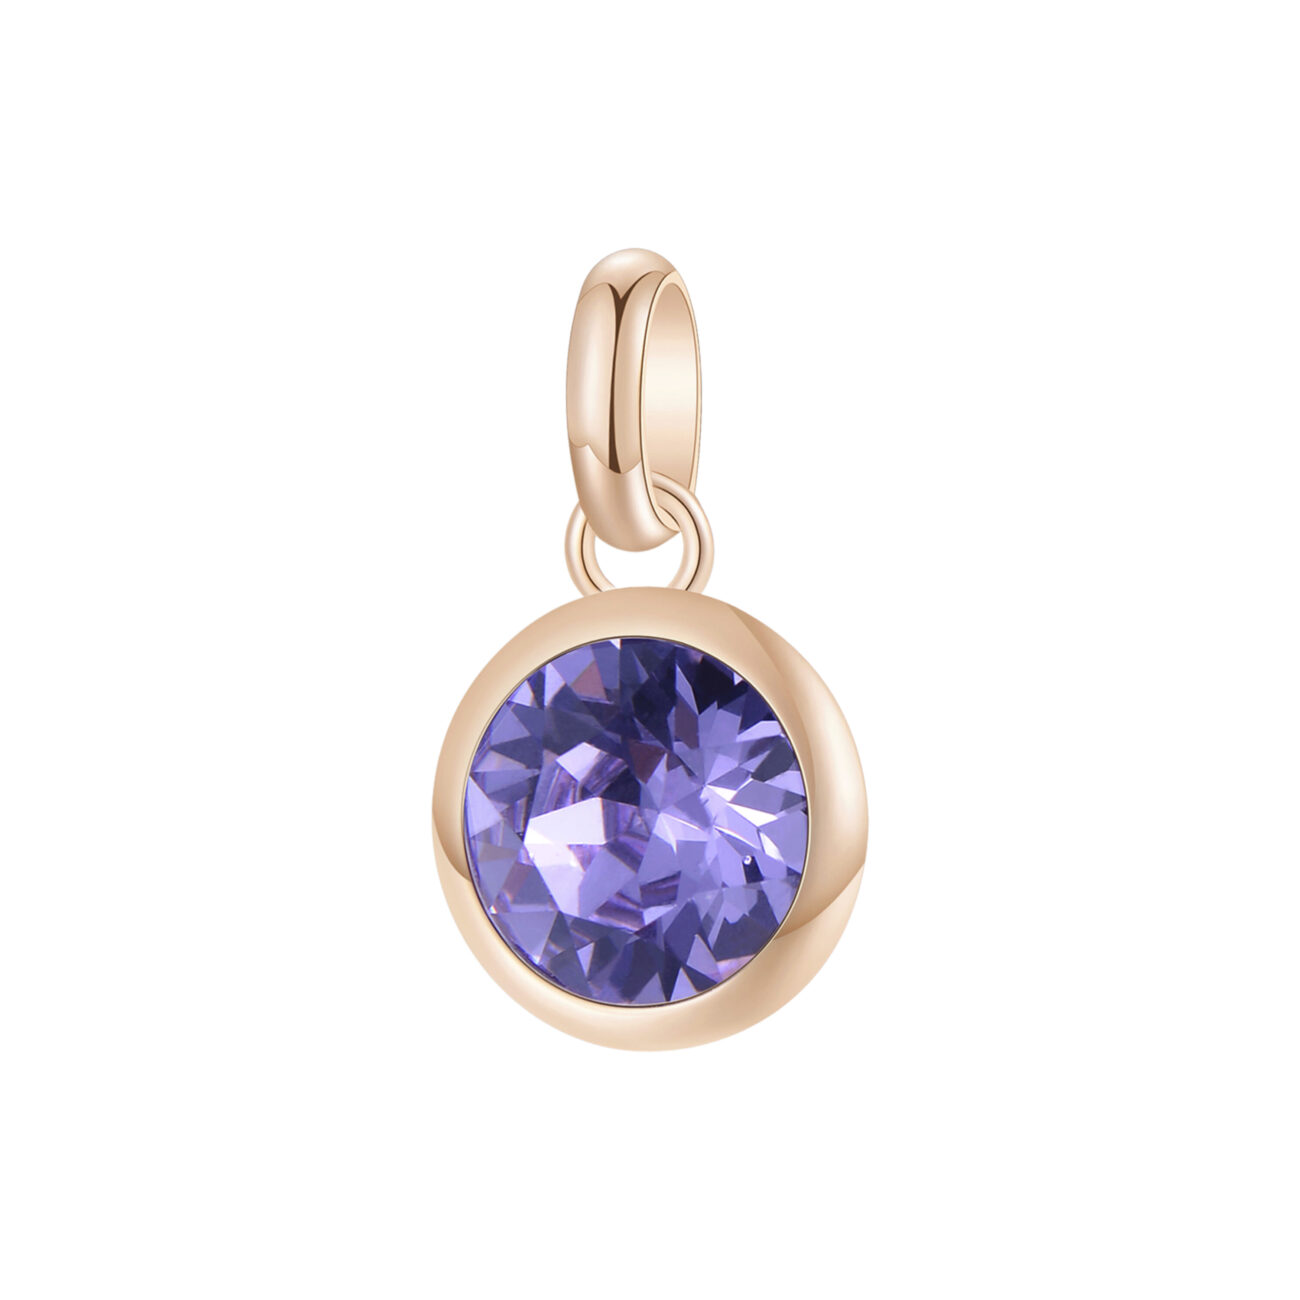 316L stainless steel beads, rose gold pvd and provence lavander Swarovski©crystal